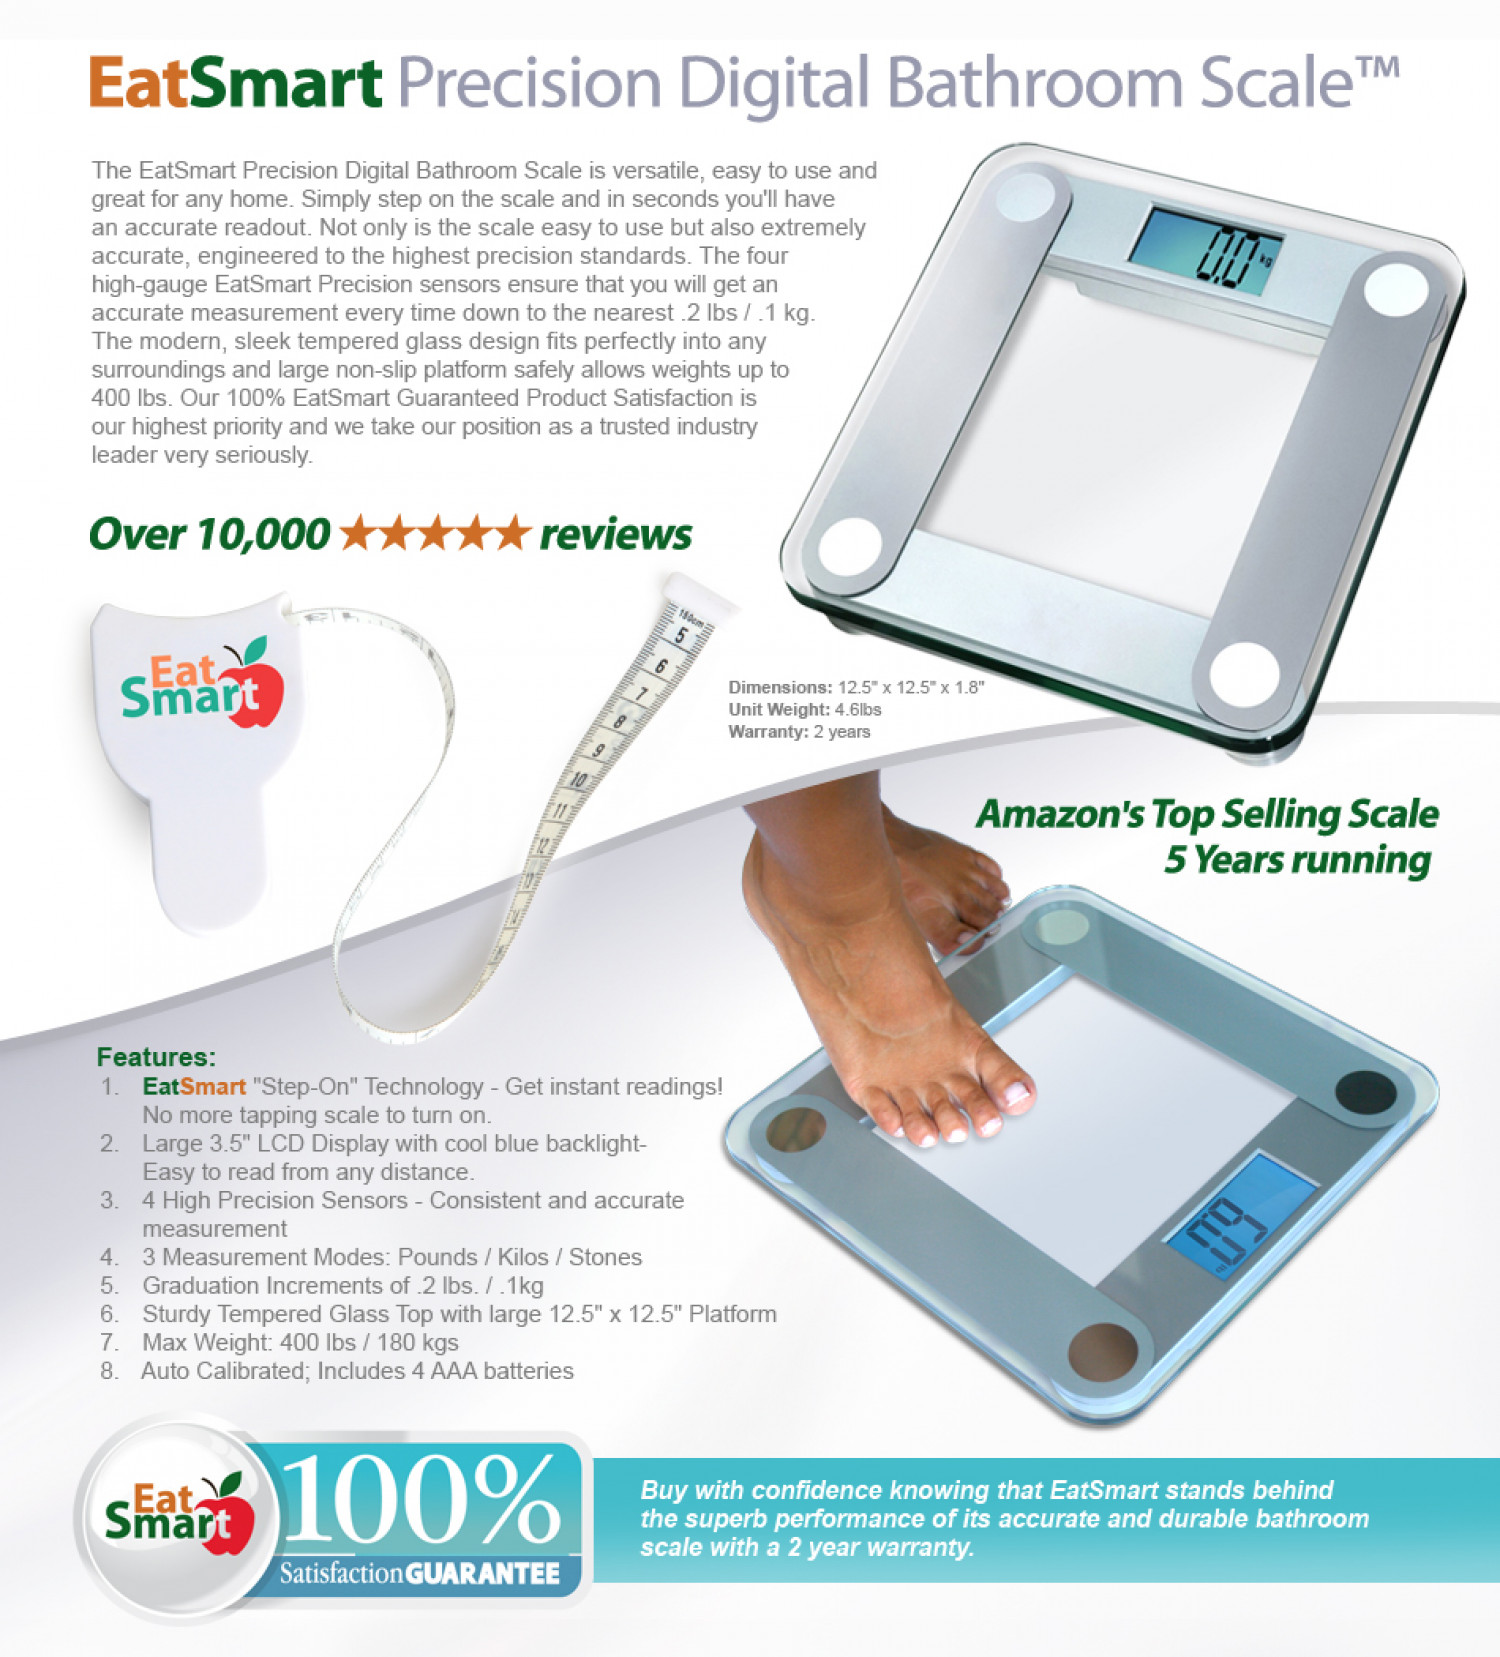 Eatsmart Precision Digital Bathroom